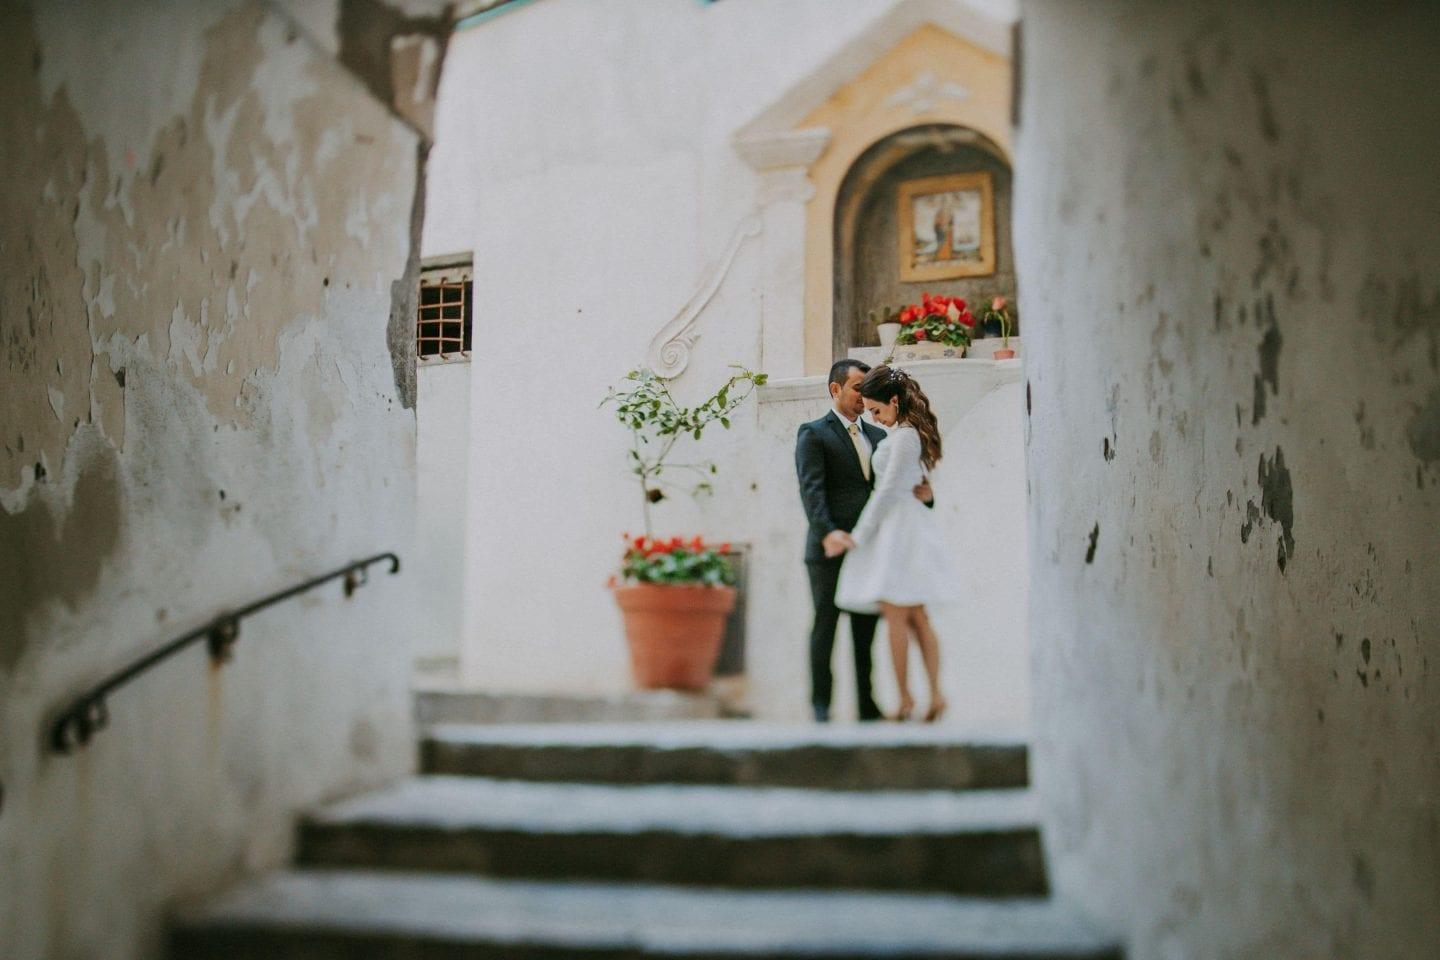 honeymoon photographer positano amalfi coast italy